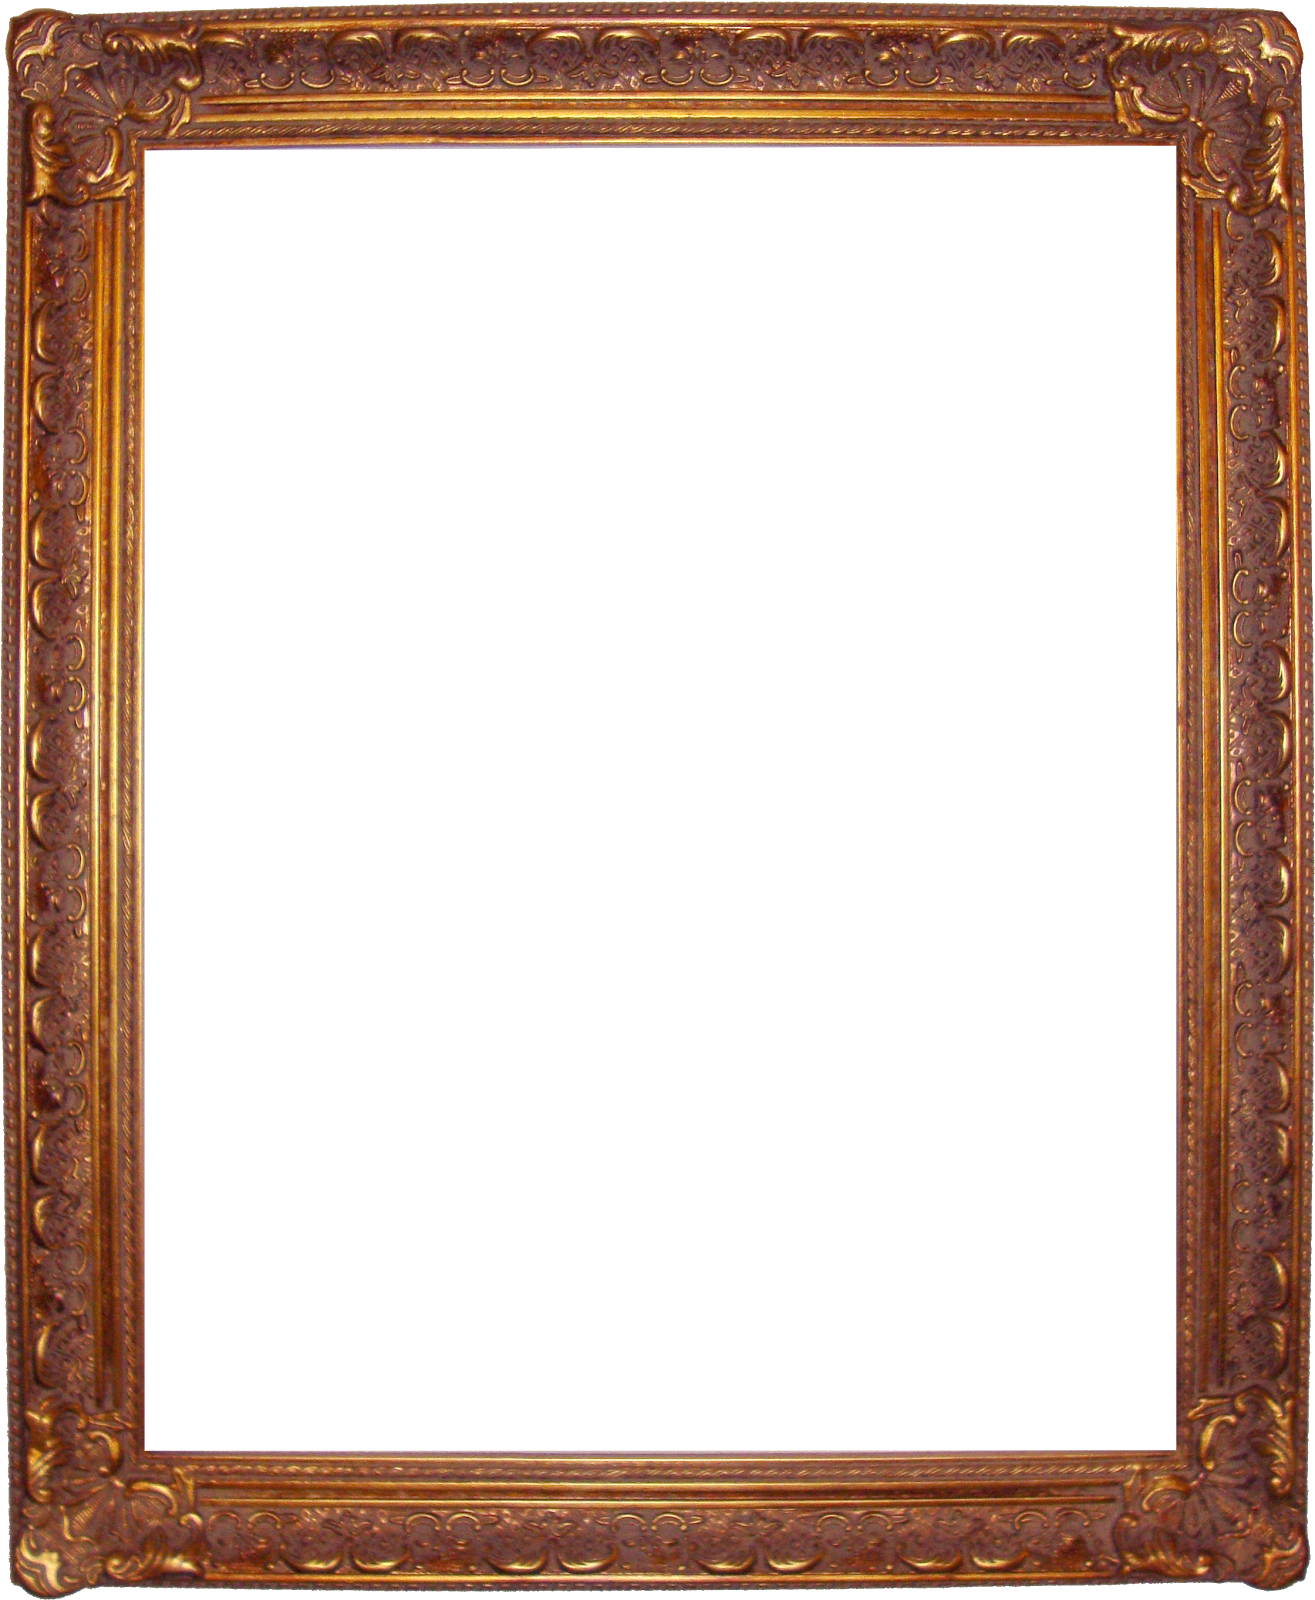 wooden frame gallery - Google Search | Hand Made ...